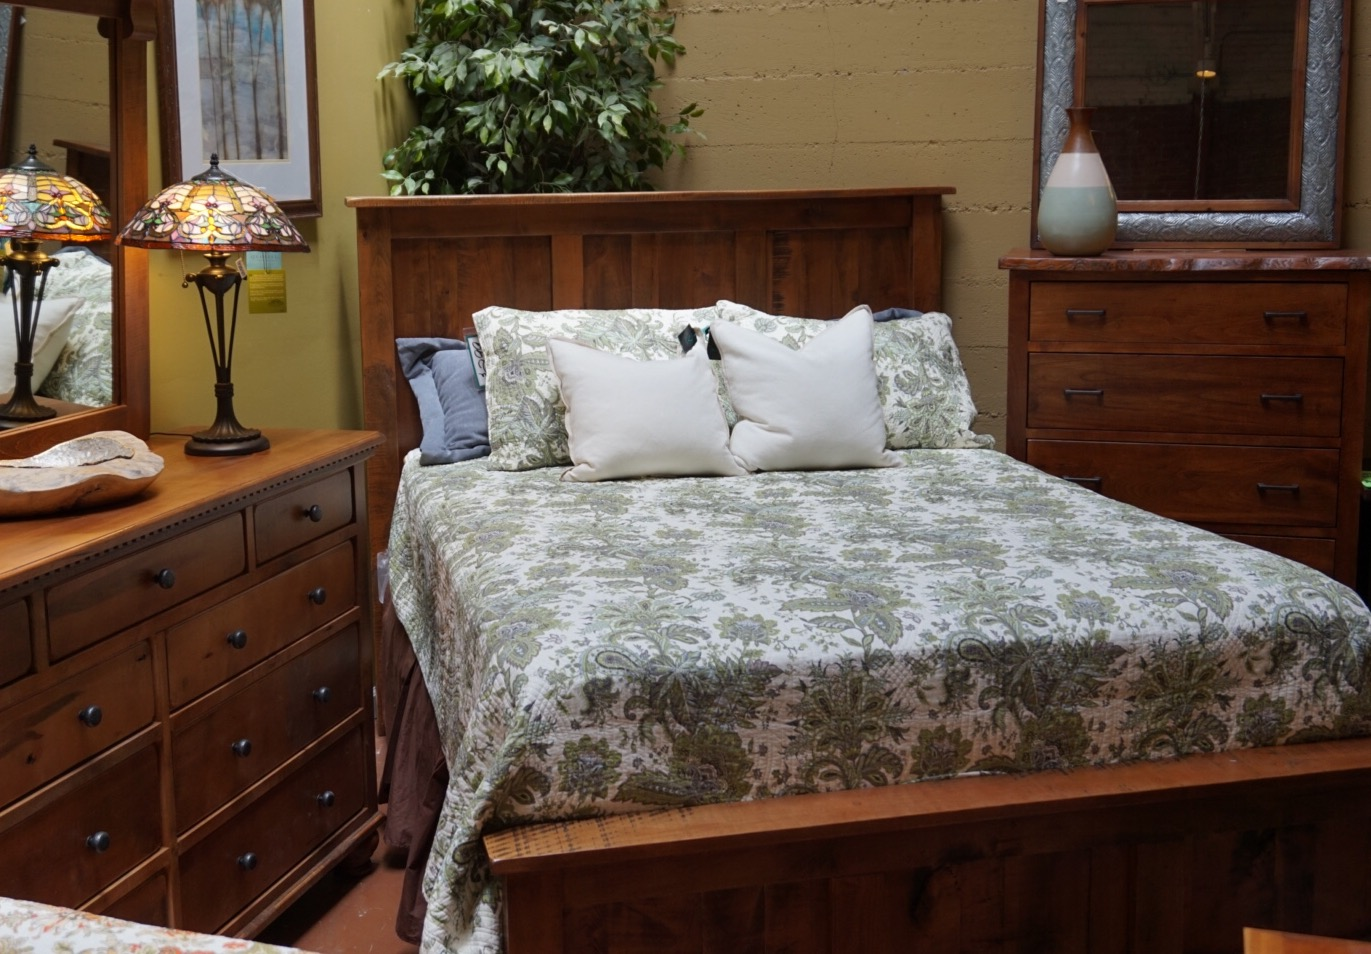 Rustic Maple Bed and Dresser